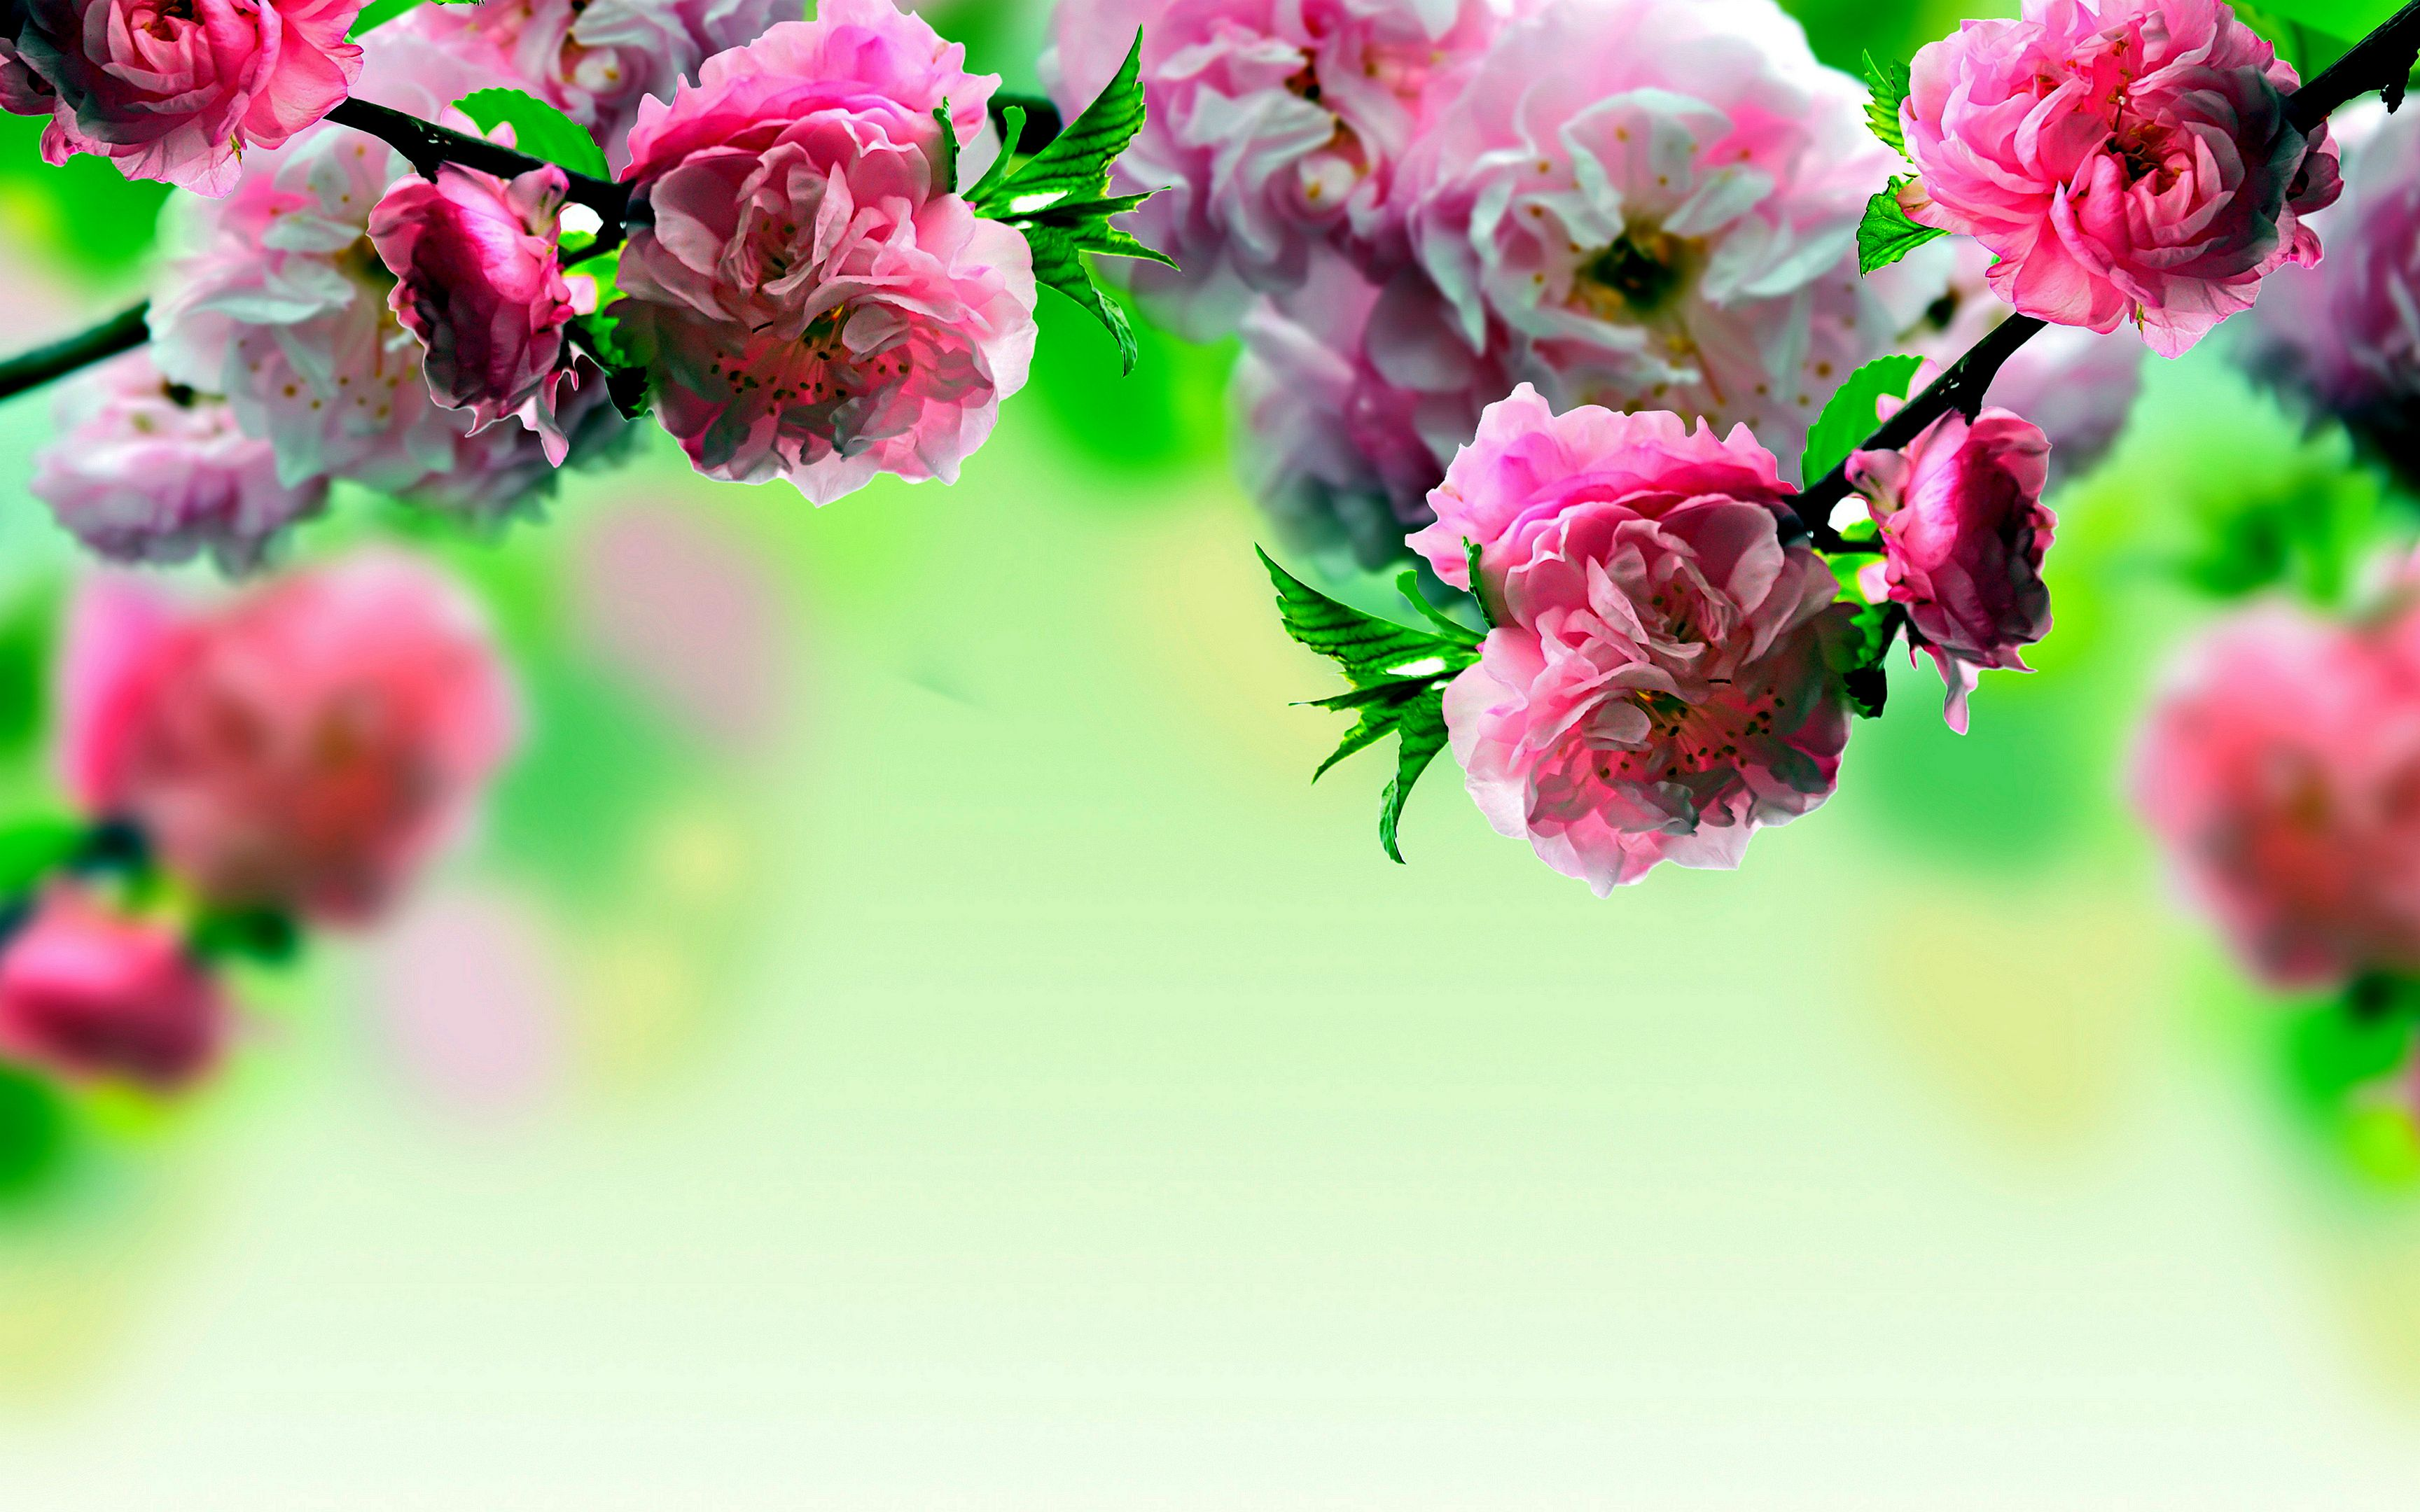 Spring Flowers Wallpaper High Definition Is 4k Wallpaper Yodobi Good Morning Friends Images Spring Flowers Wallpaper Good Morning Msg Tons of awesome flowers 4k wallpapers to download for free. spring flowers wallpaper high